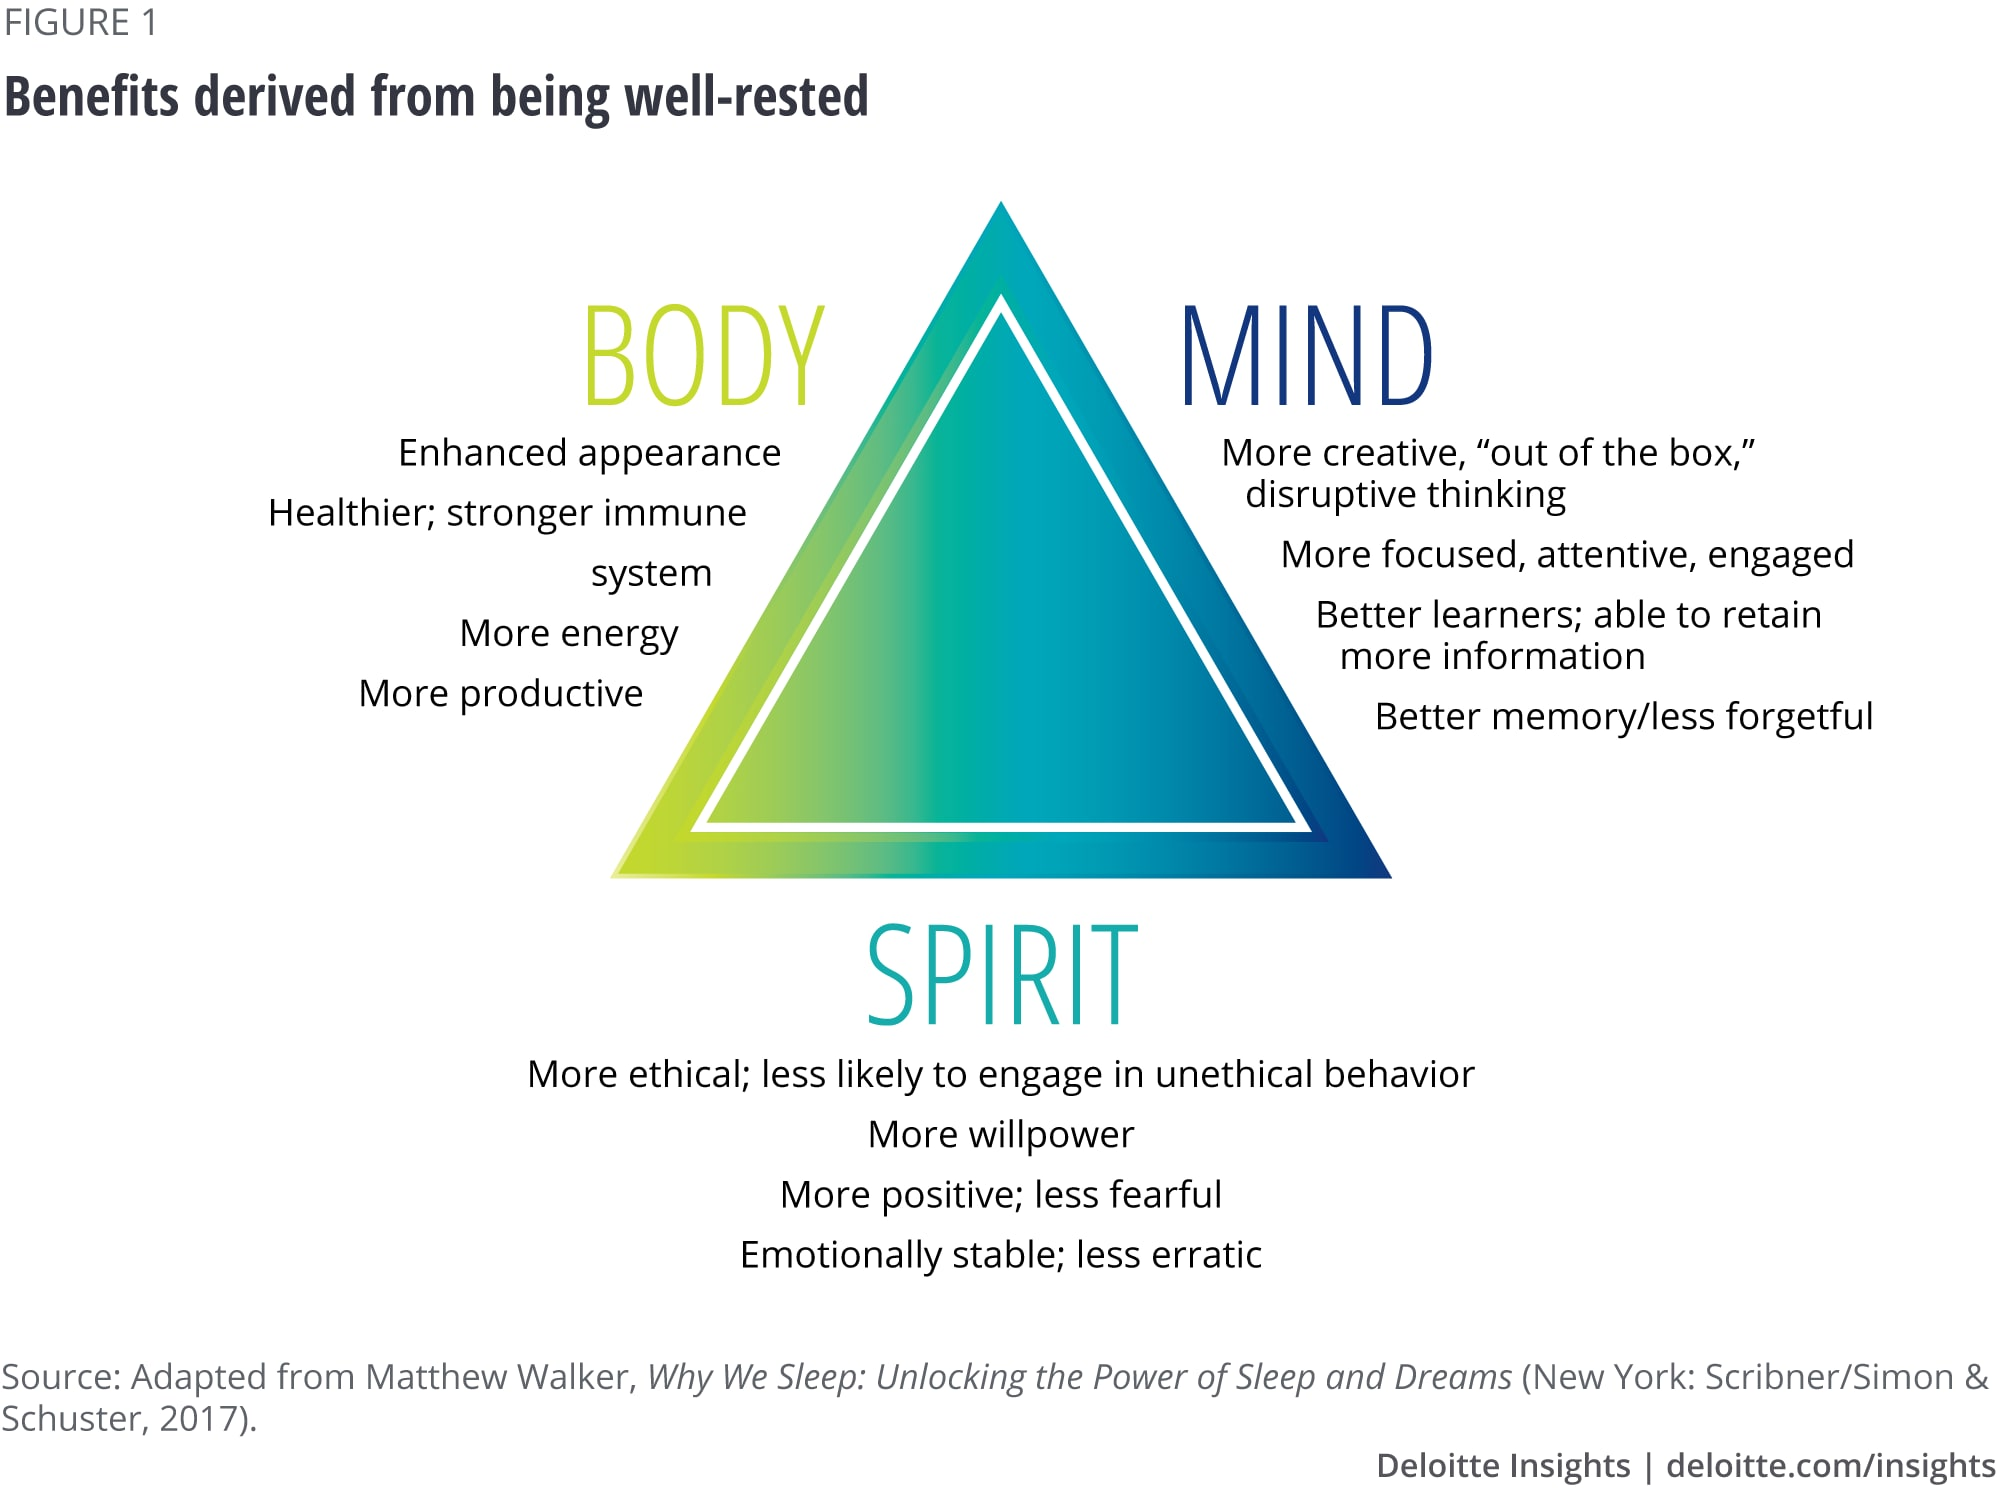 Benefits derived from being well-rested